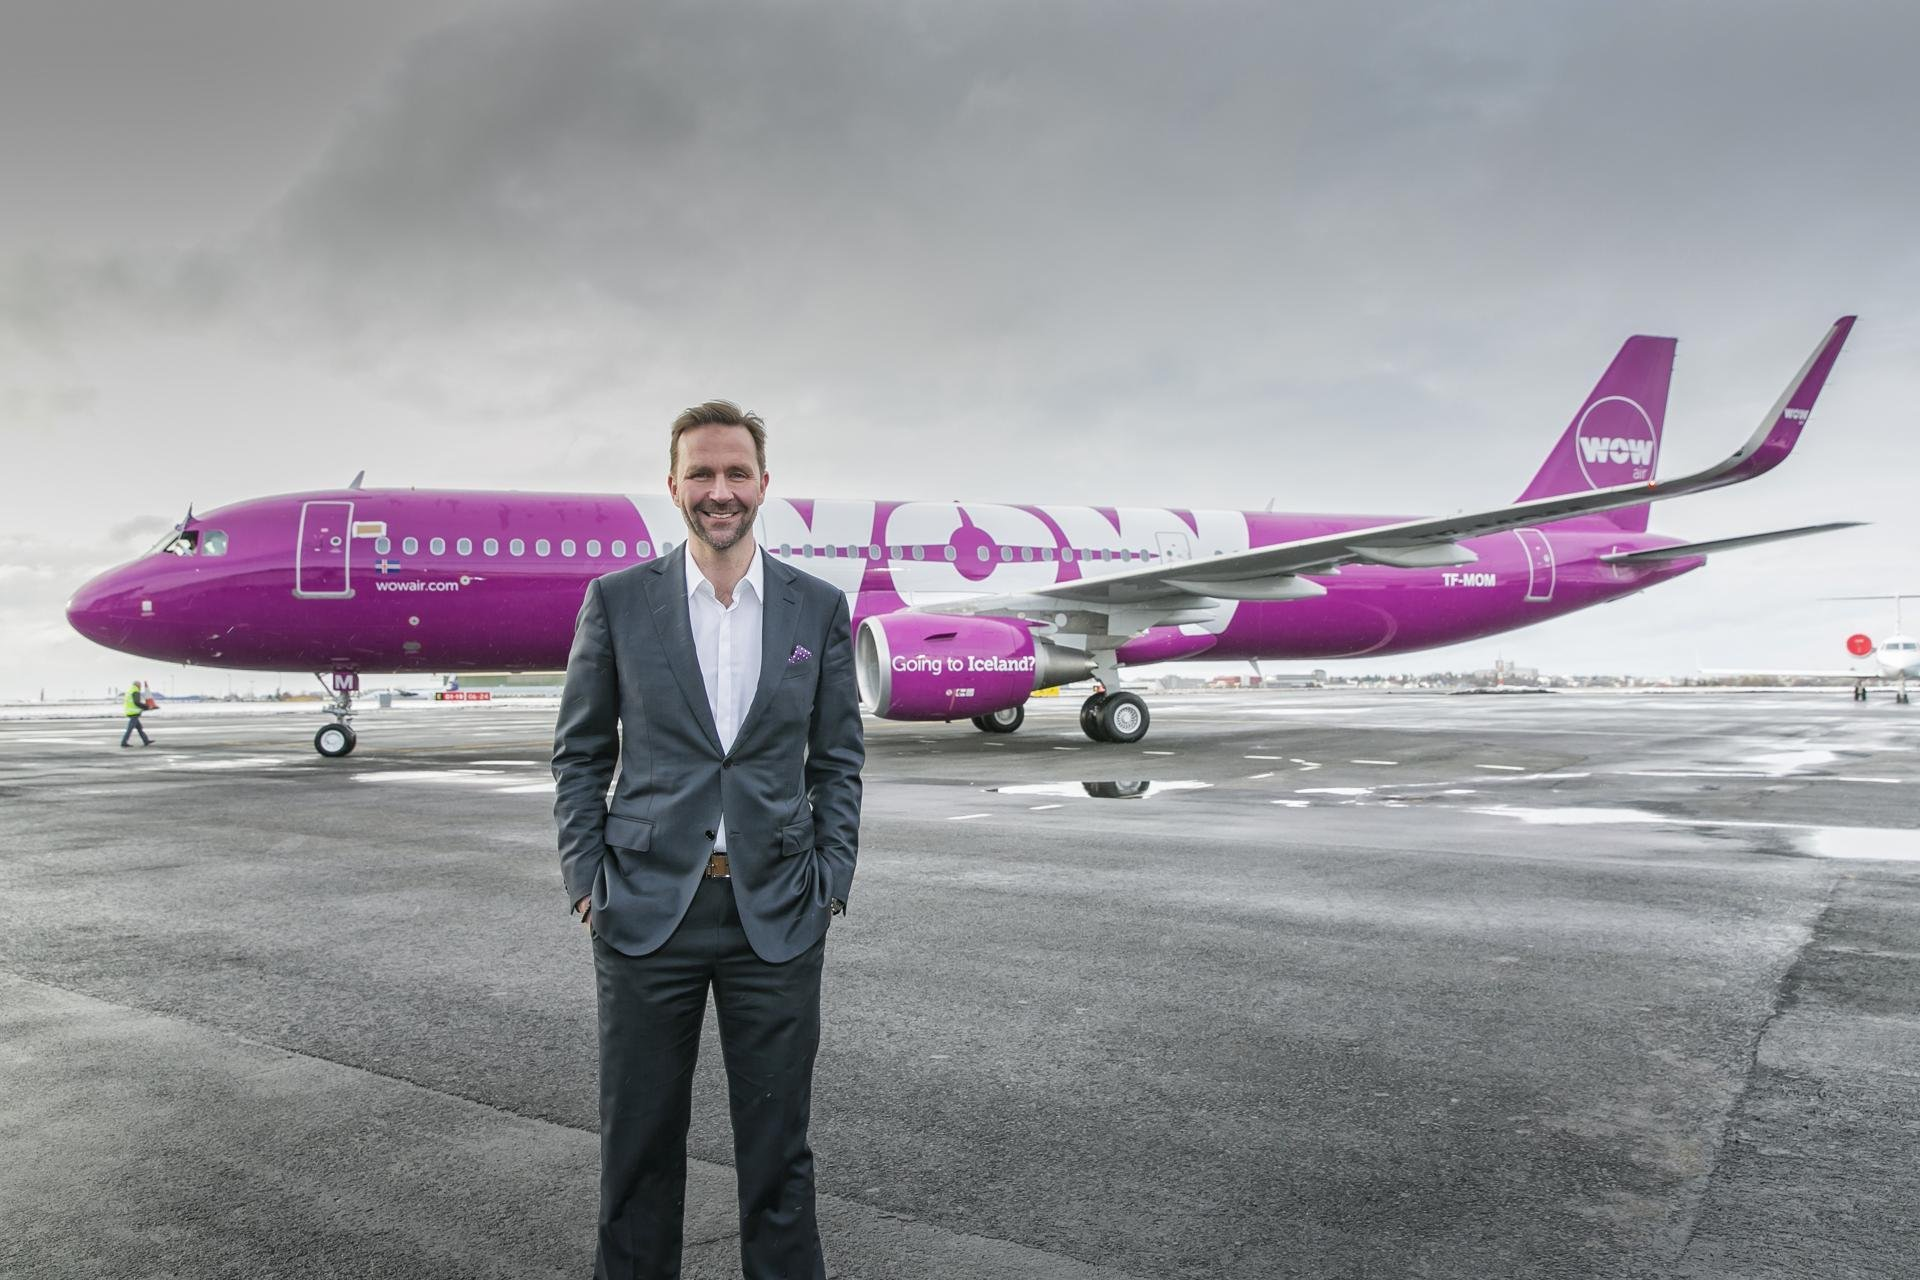 Skúli Mogensen, founder and CEO of WOW air. Image courtesy of WOW air.